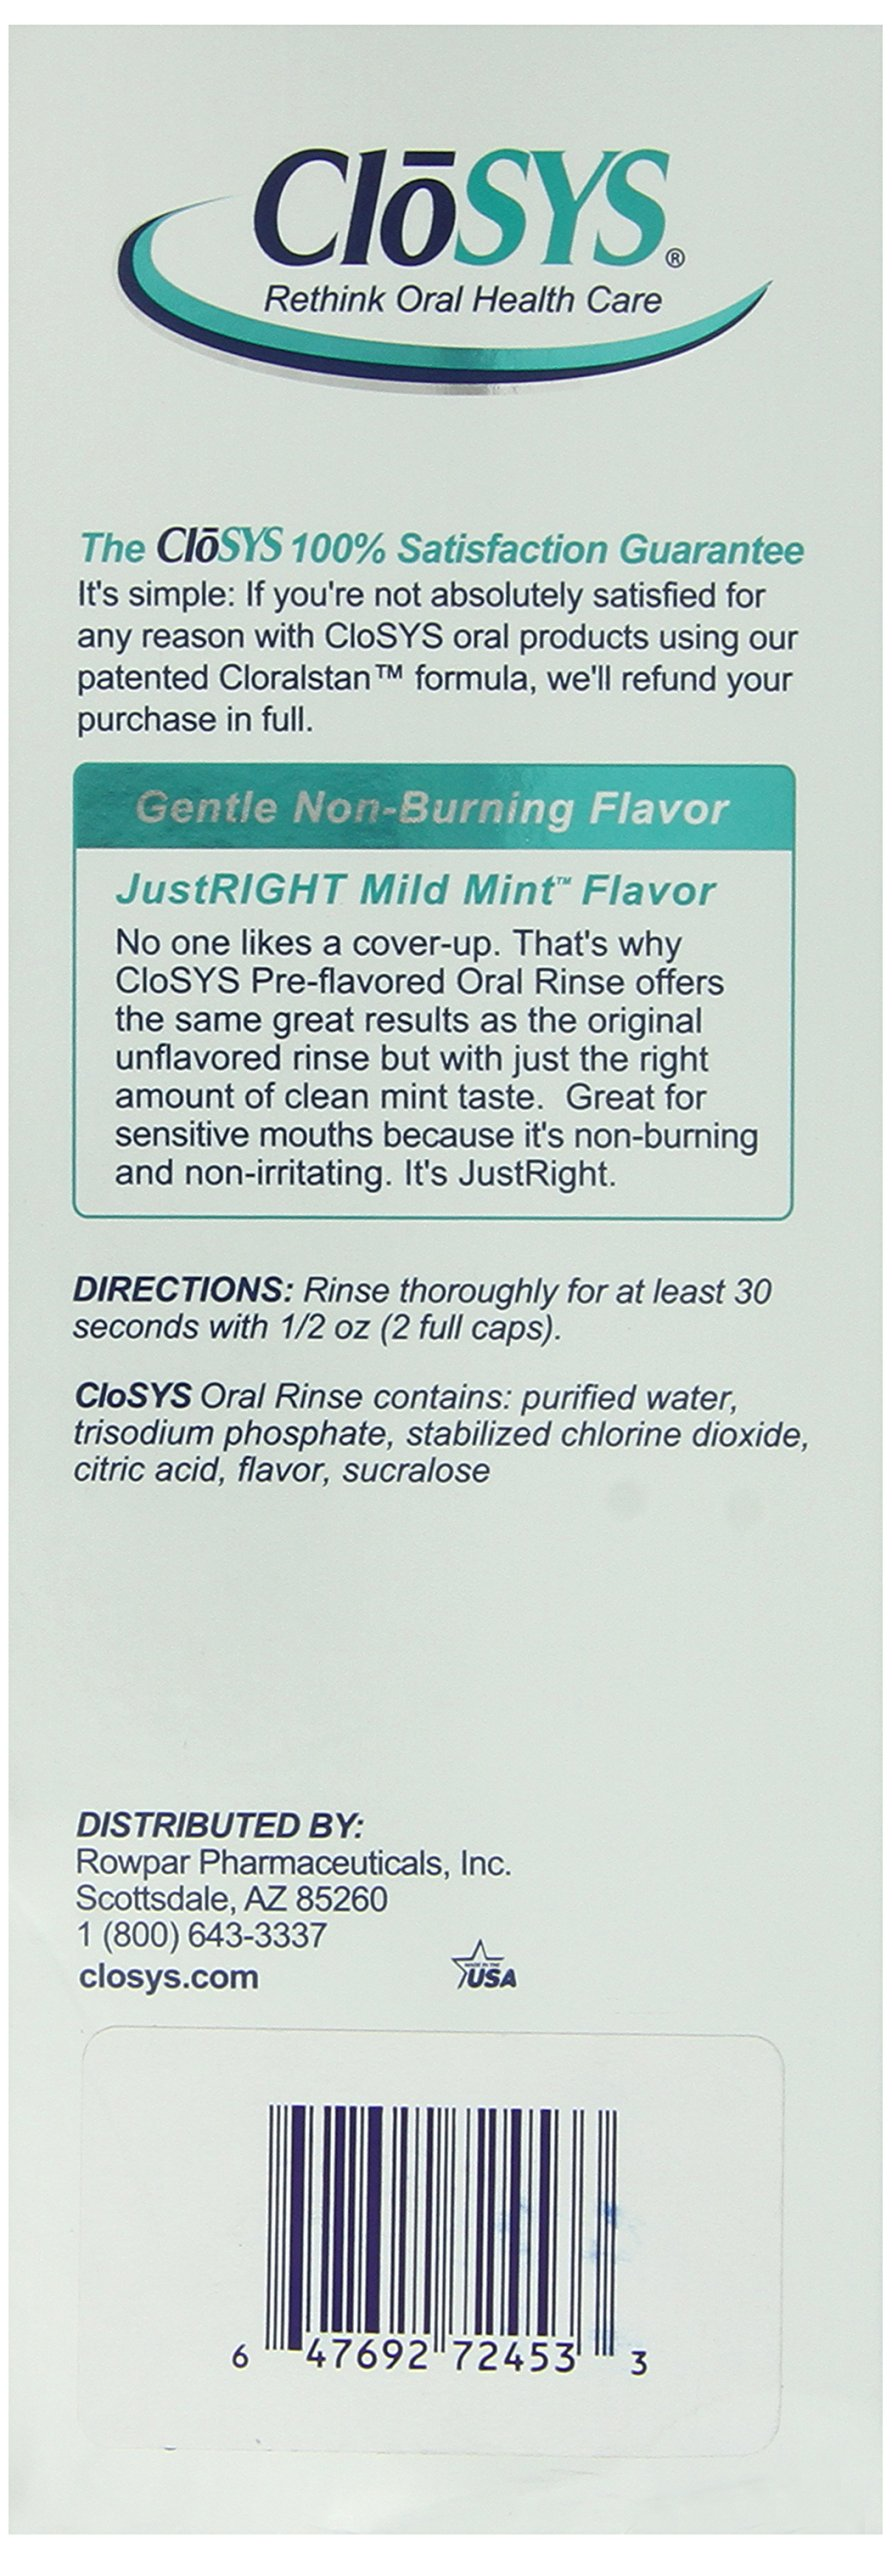 CloSYS Gentle Mint Flavored Mouthwash for Sensitive Mouths, Alcohol Free, 32 ounce